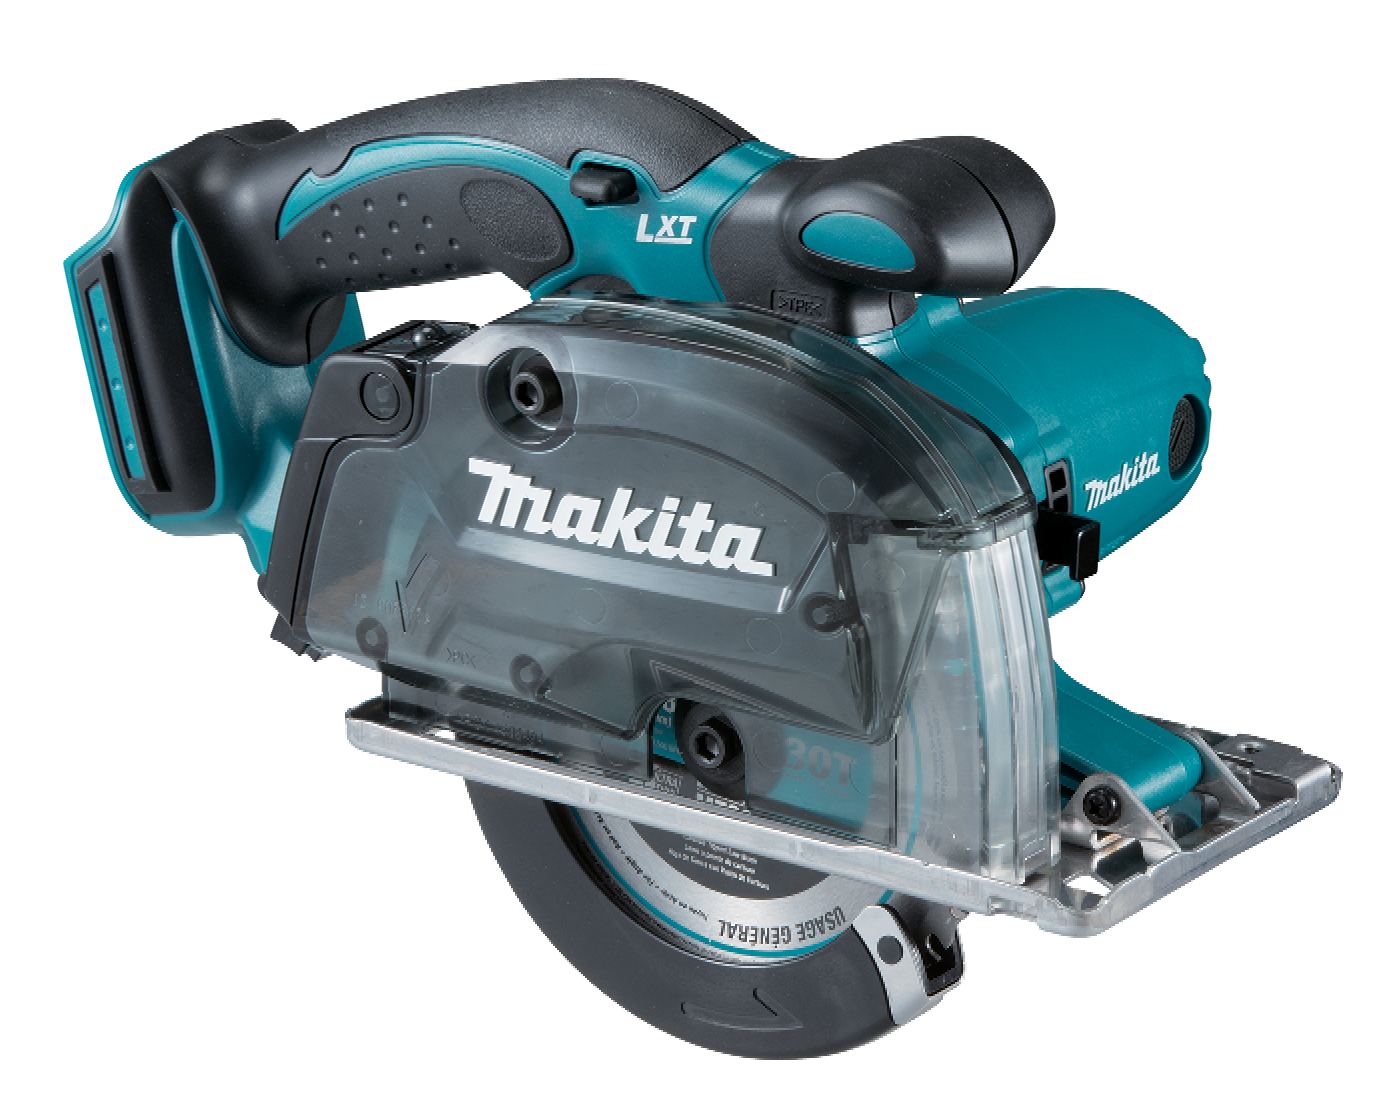 Makita LXT METAL CIRCULAR SAW DCS552Z 18V 136mm Blade, LED Job Light, Skin Only